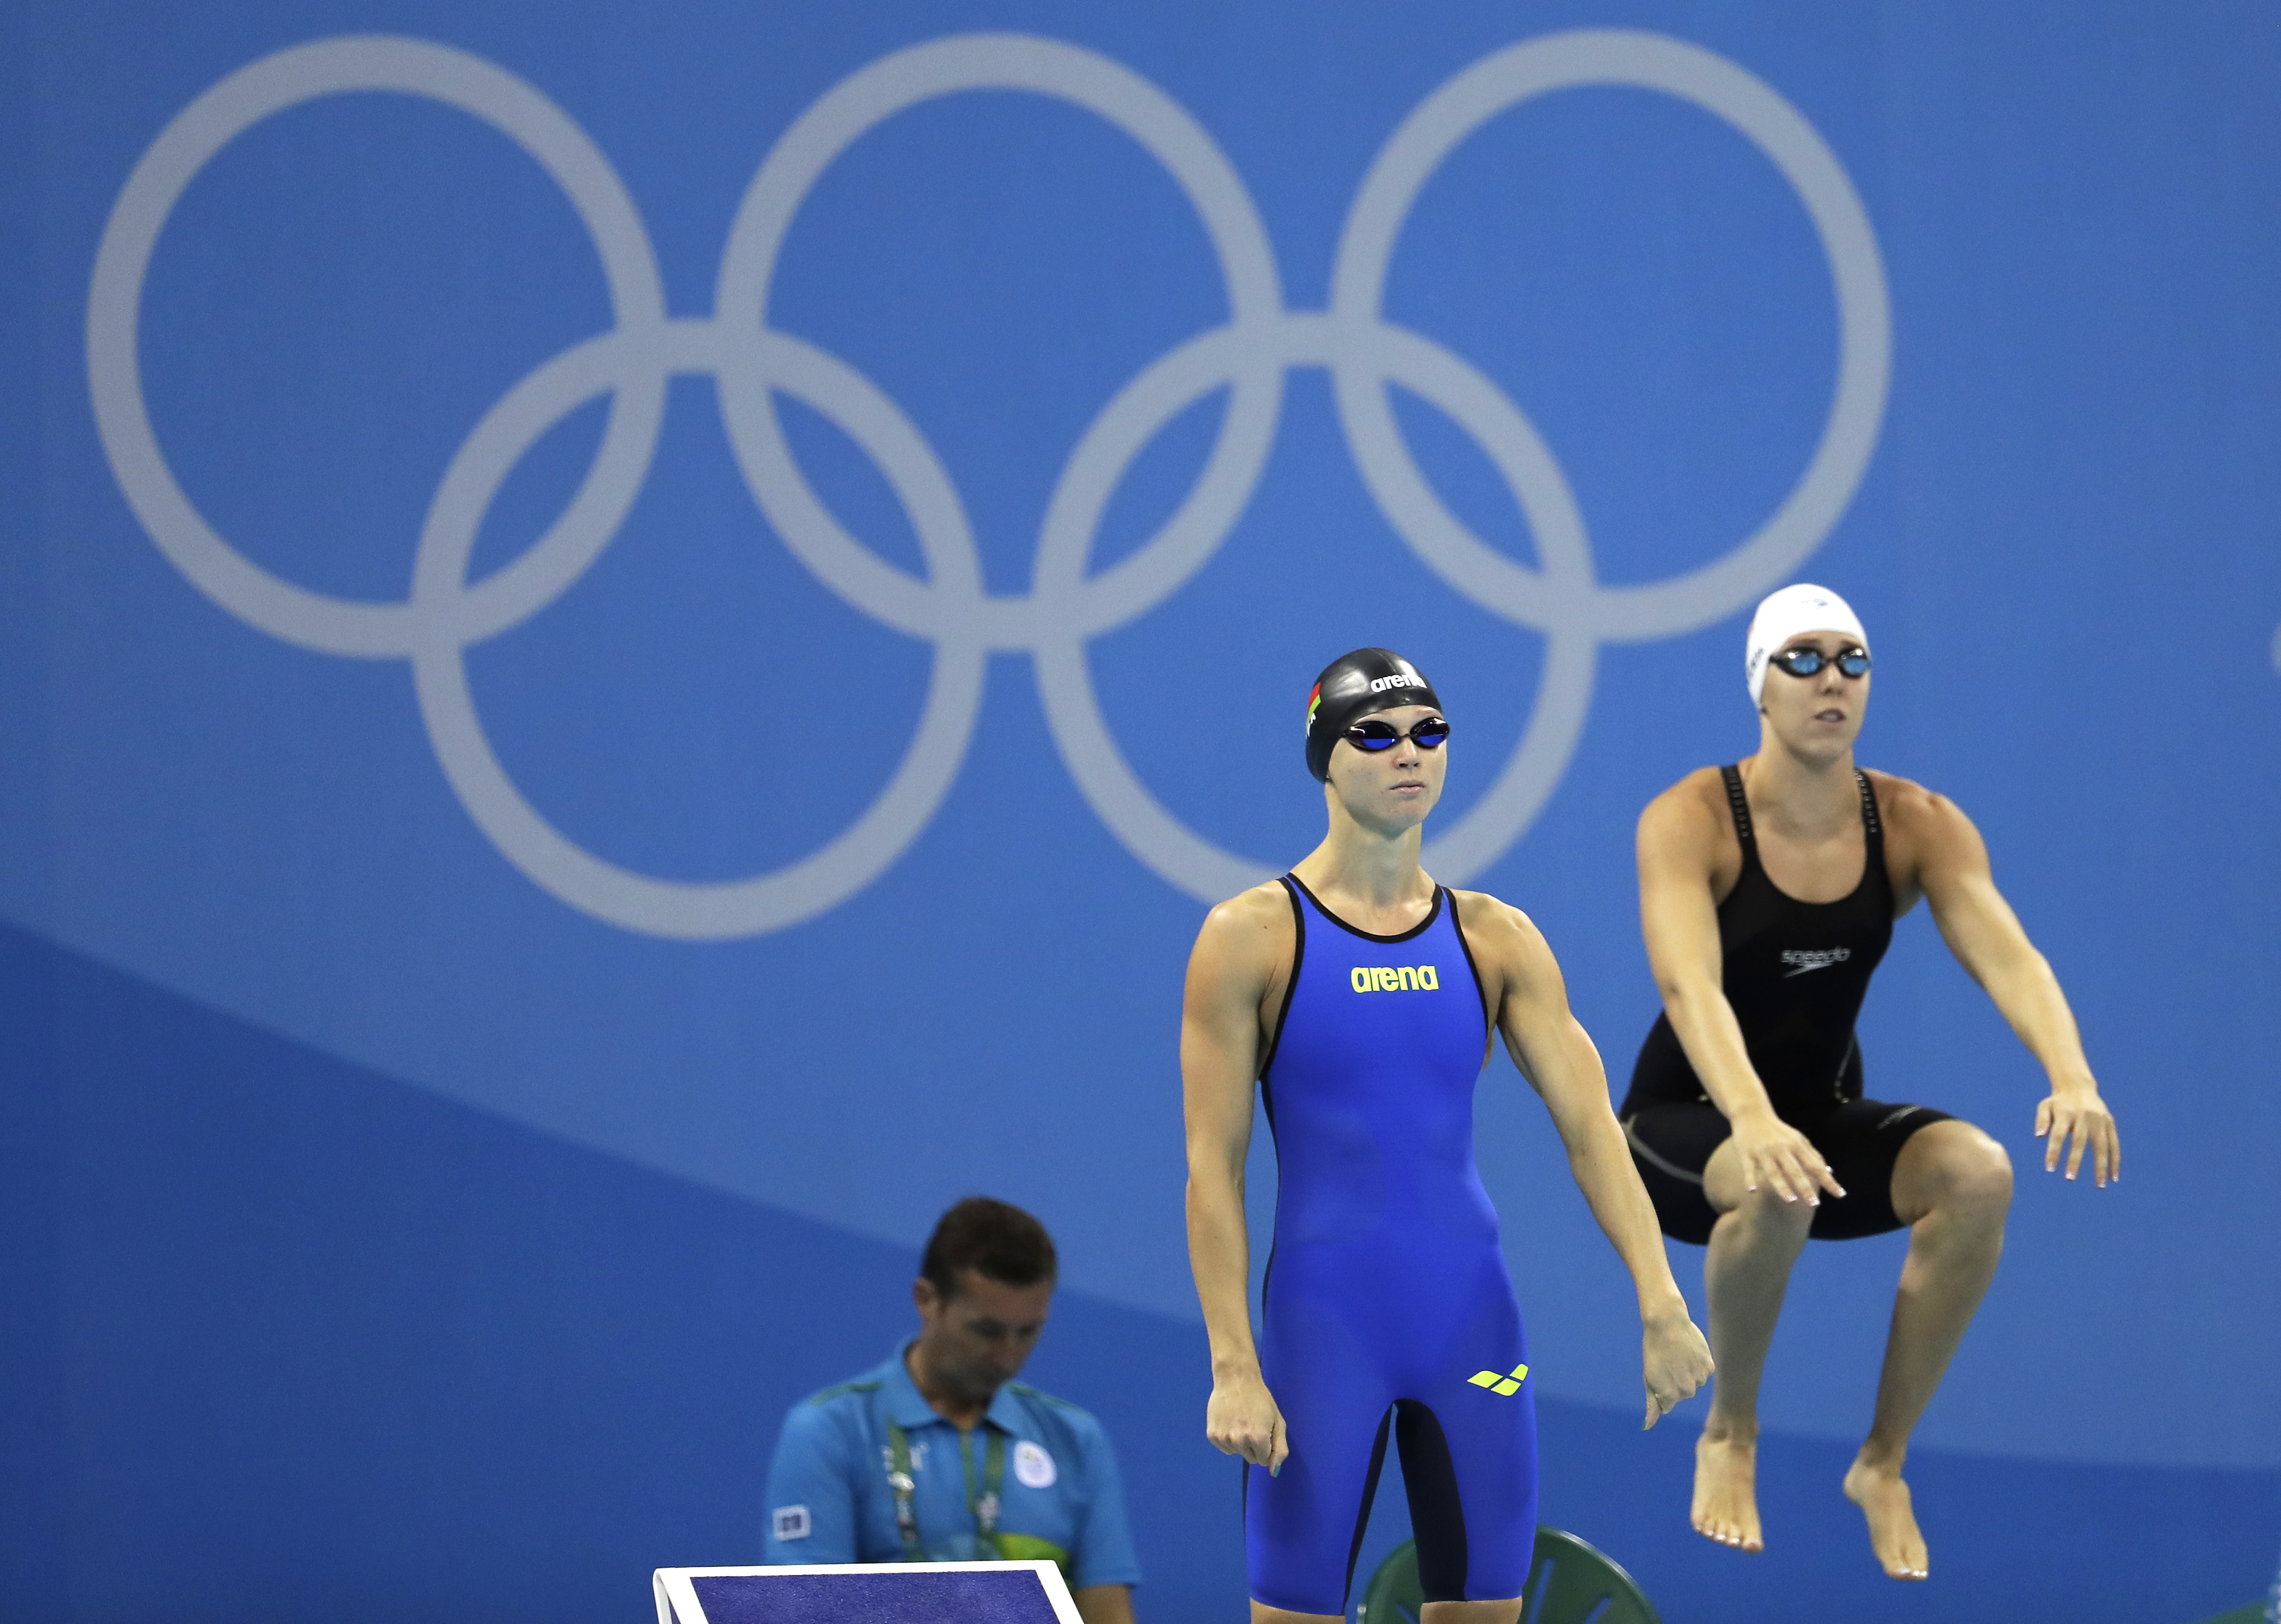 Belarus' Aliaksandra Herasimenia, left, and United States' Abbey Weitzeil prepare to start during a women's 50-meter freestyle heat during the swimming competitions at the 2016 Summer Olympics, Friday, Aug. 12, 2016, in Rio de Janeiro, Brazil. (AP Photo/N